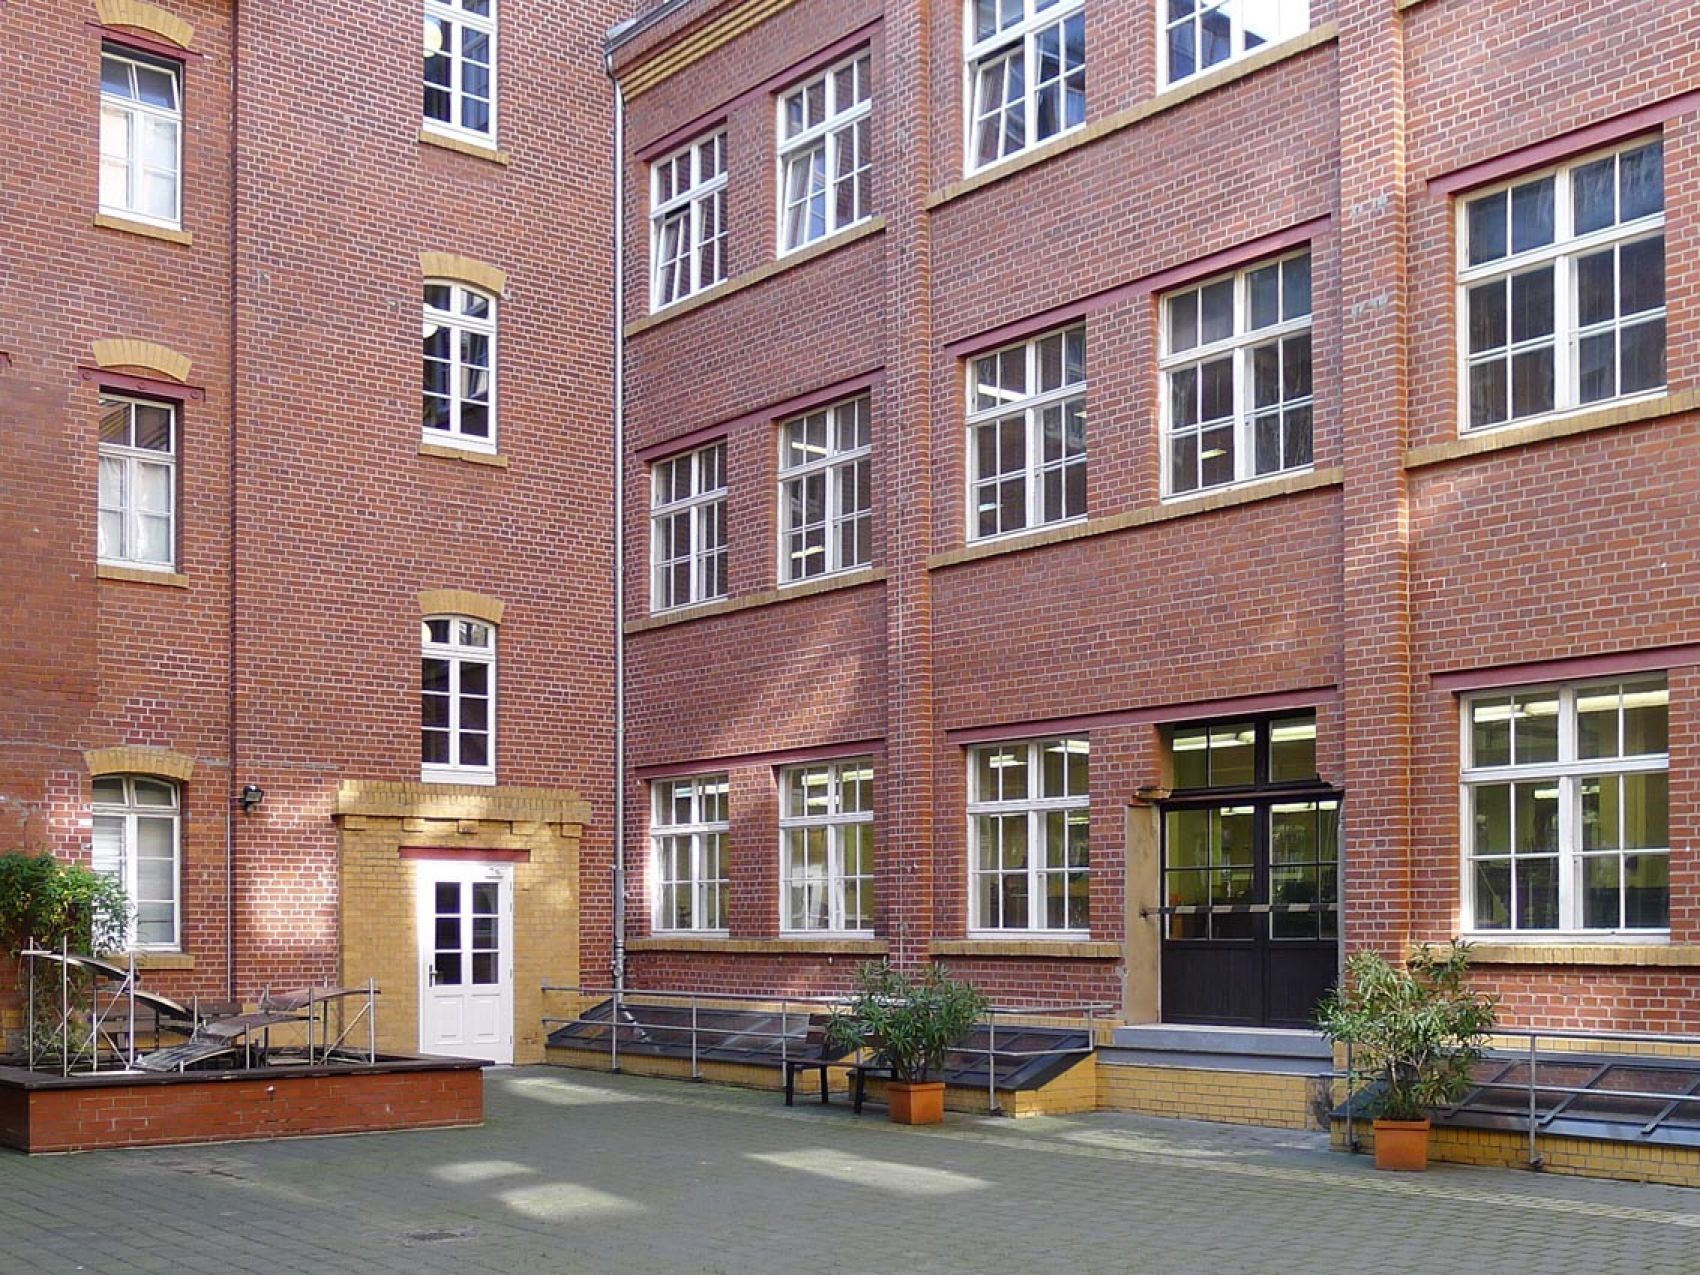 The museum's inner courtyard; the red bricks are typical of industrial buildings. Image: Leipzig Museum of the Printing Arts